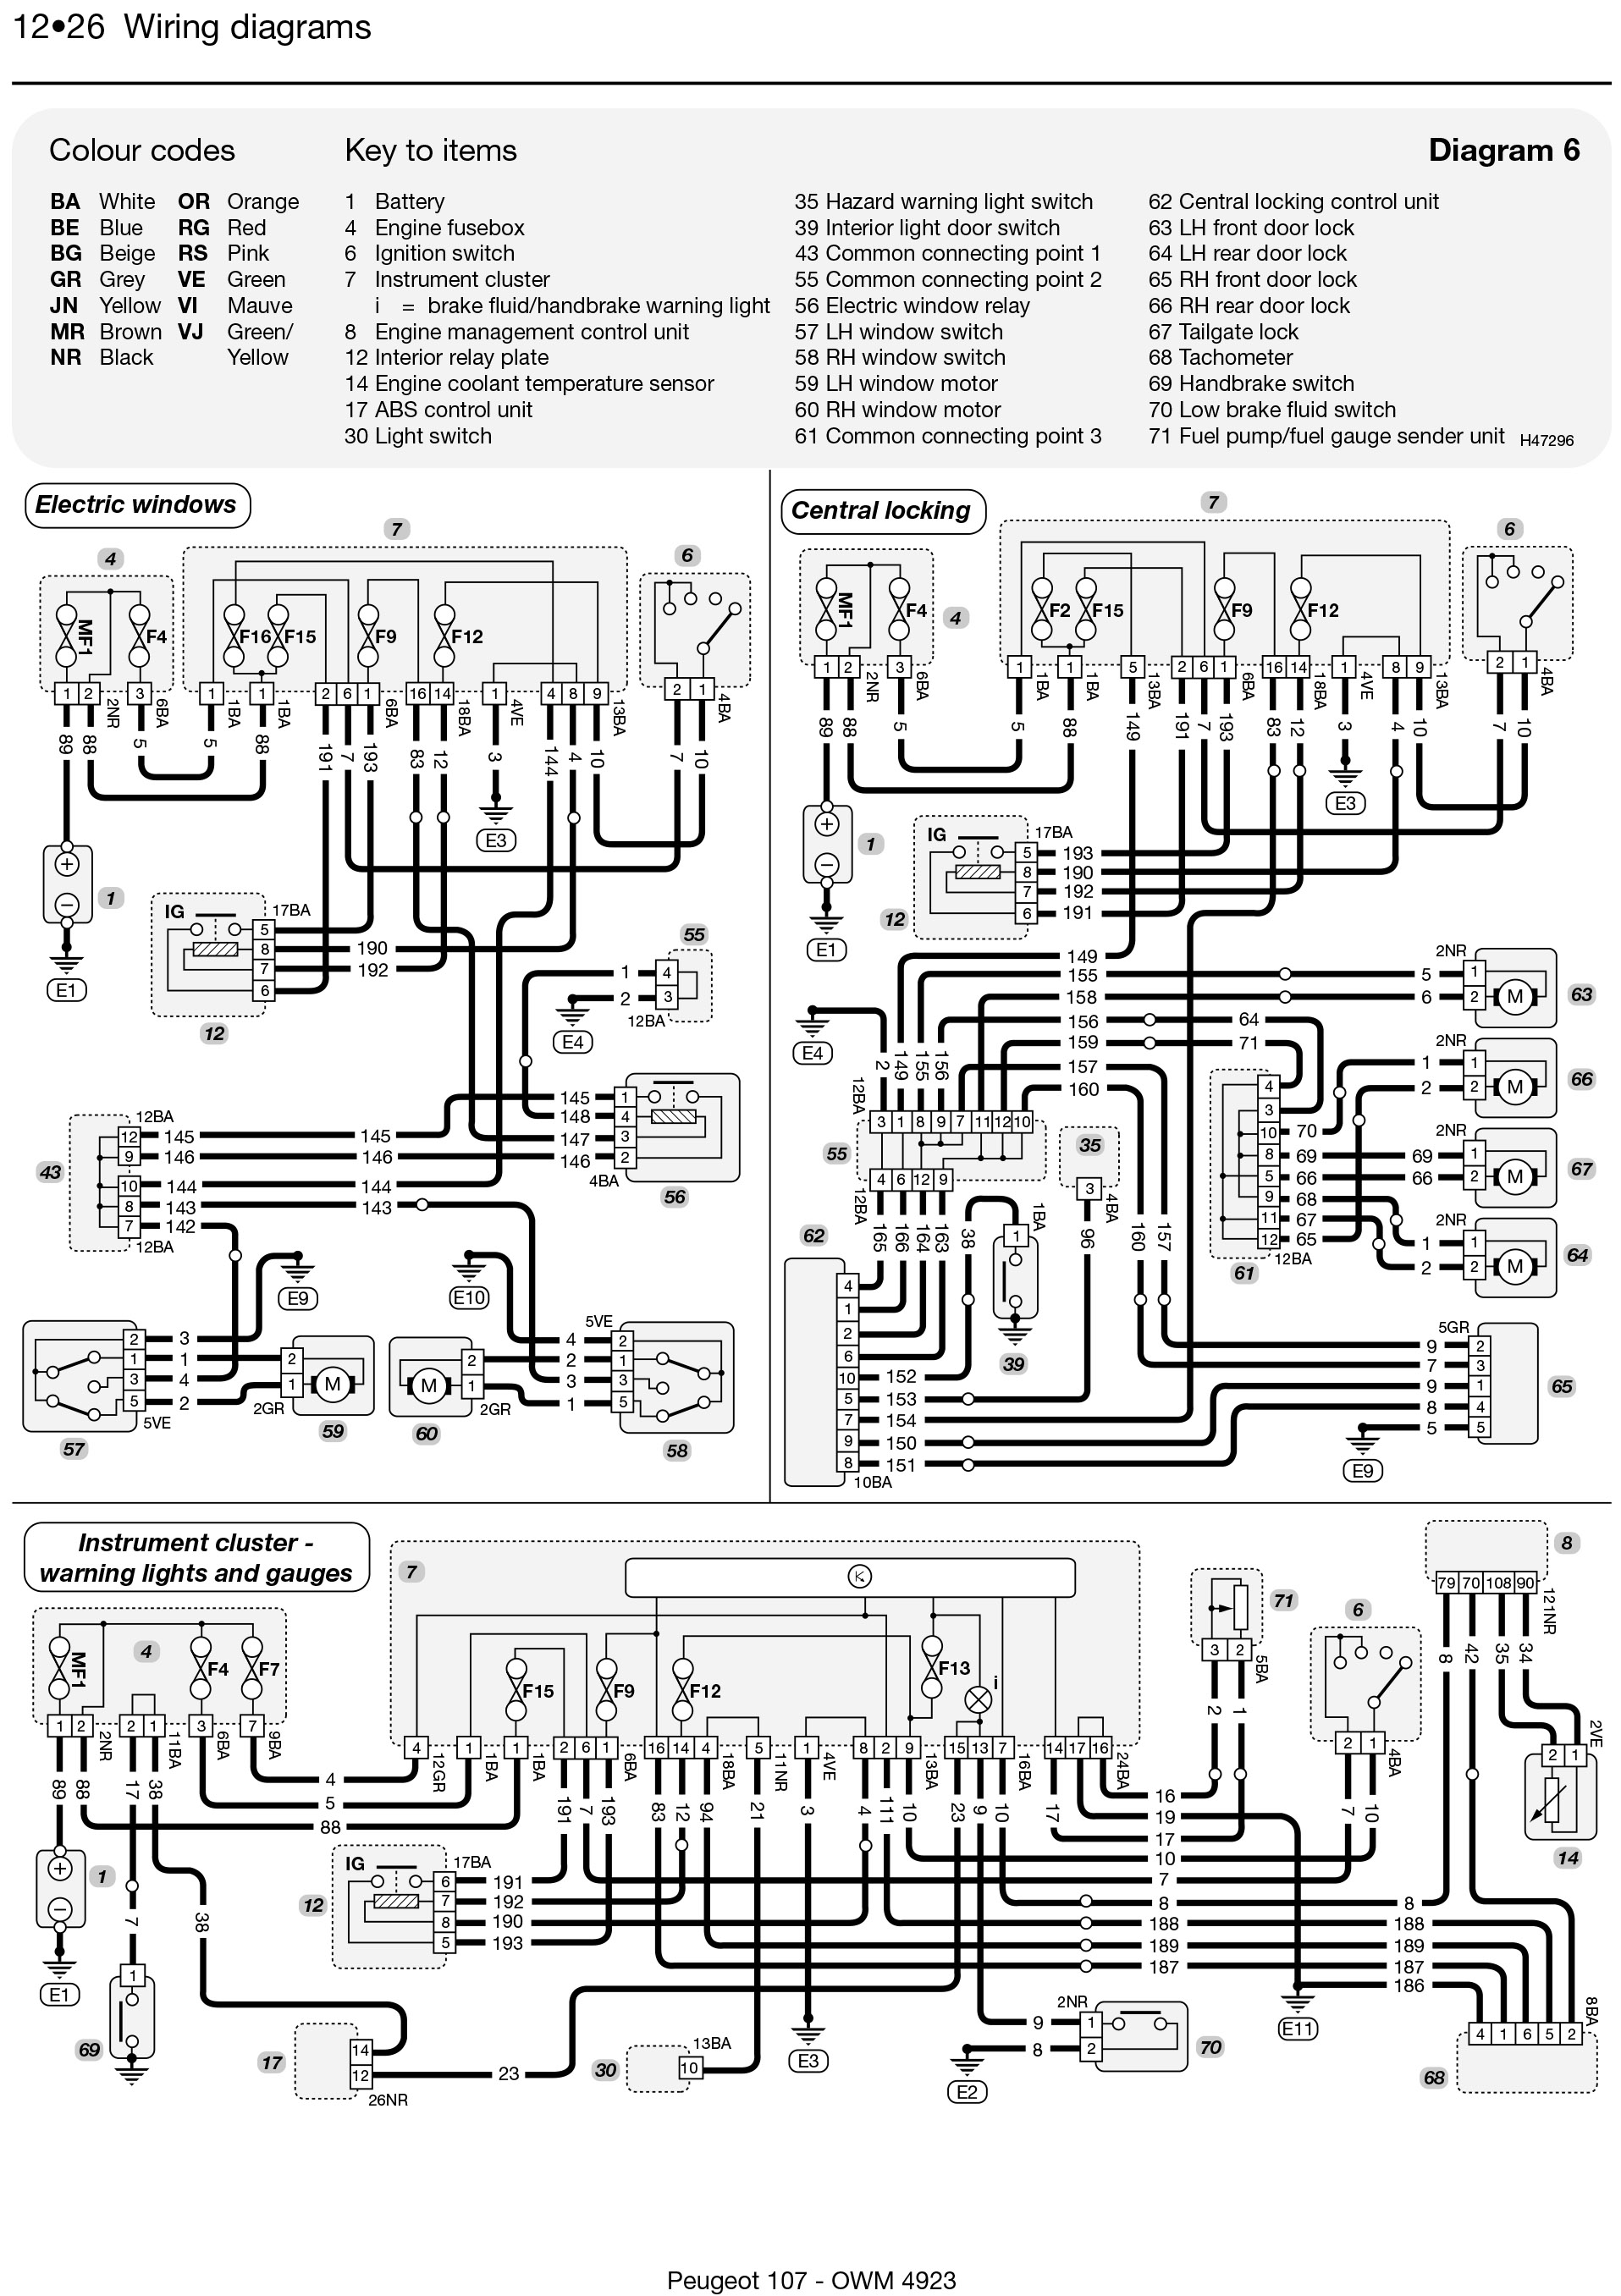 hight resolution of peugeot wiring diagrams pdf wiring diagram data schema peugeot 206 wiring diagrams pdf peugeot wiring diagrams pdf